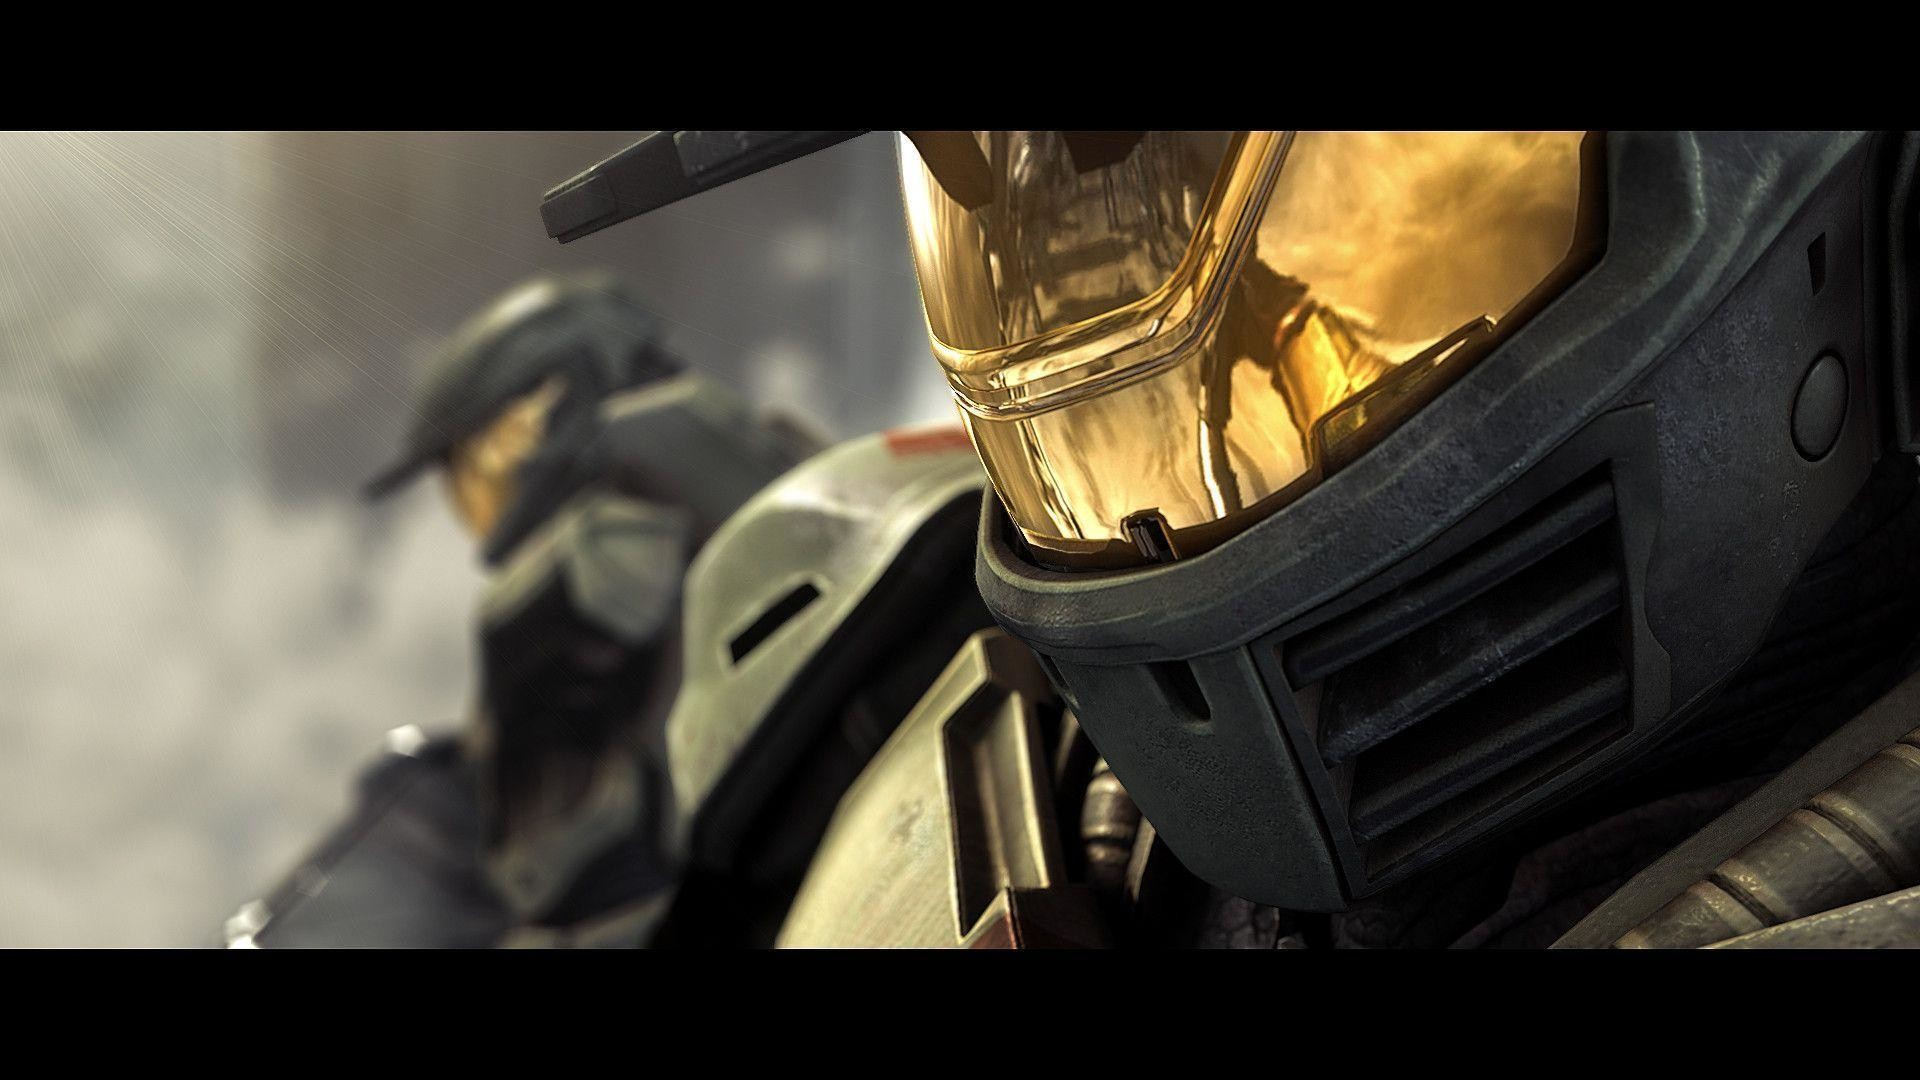 1920x1080 Wallpapers For > Halo 3 Wallpaper Hd Master Chief